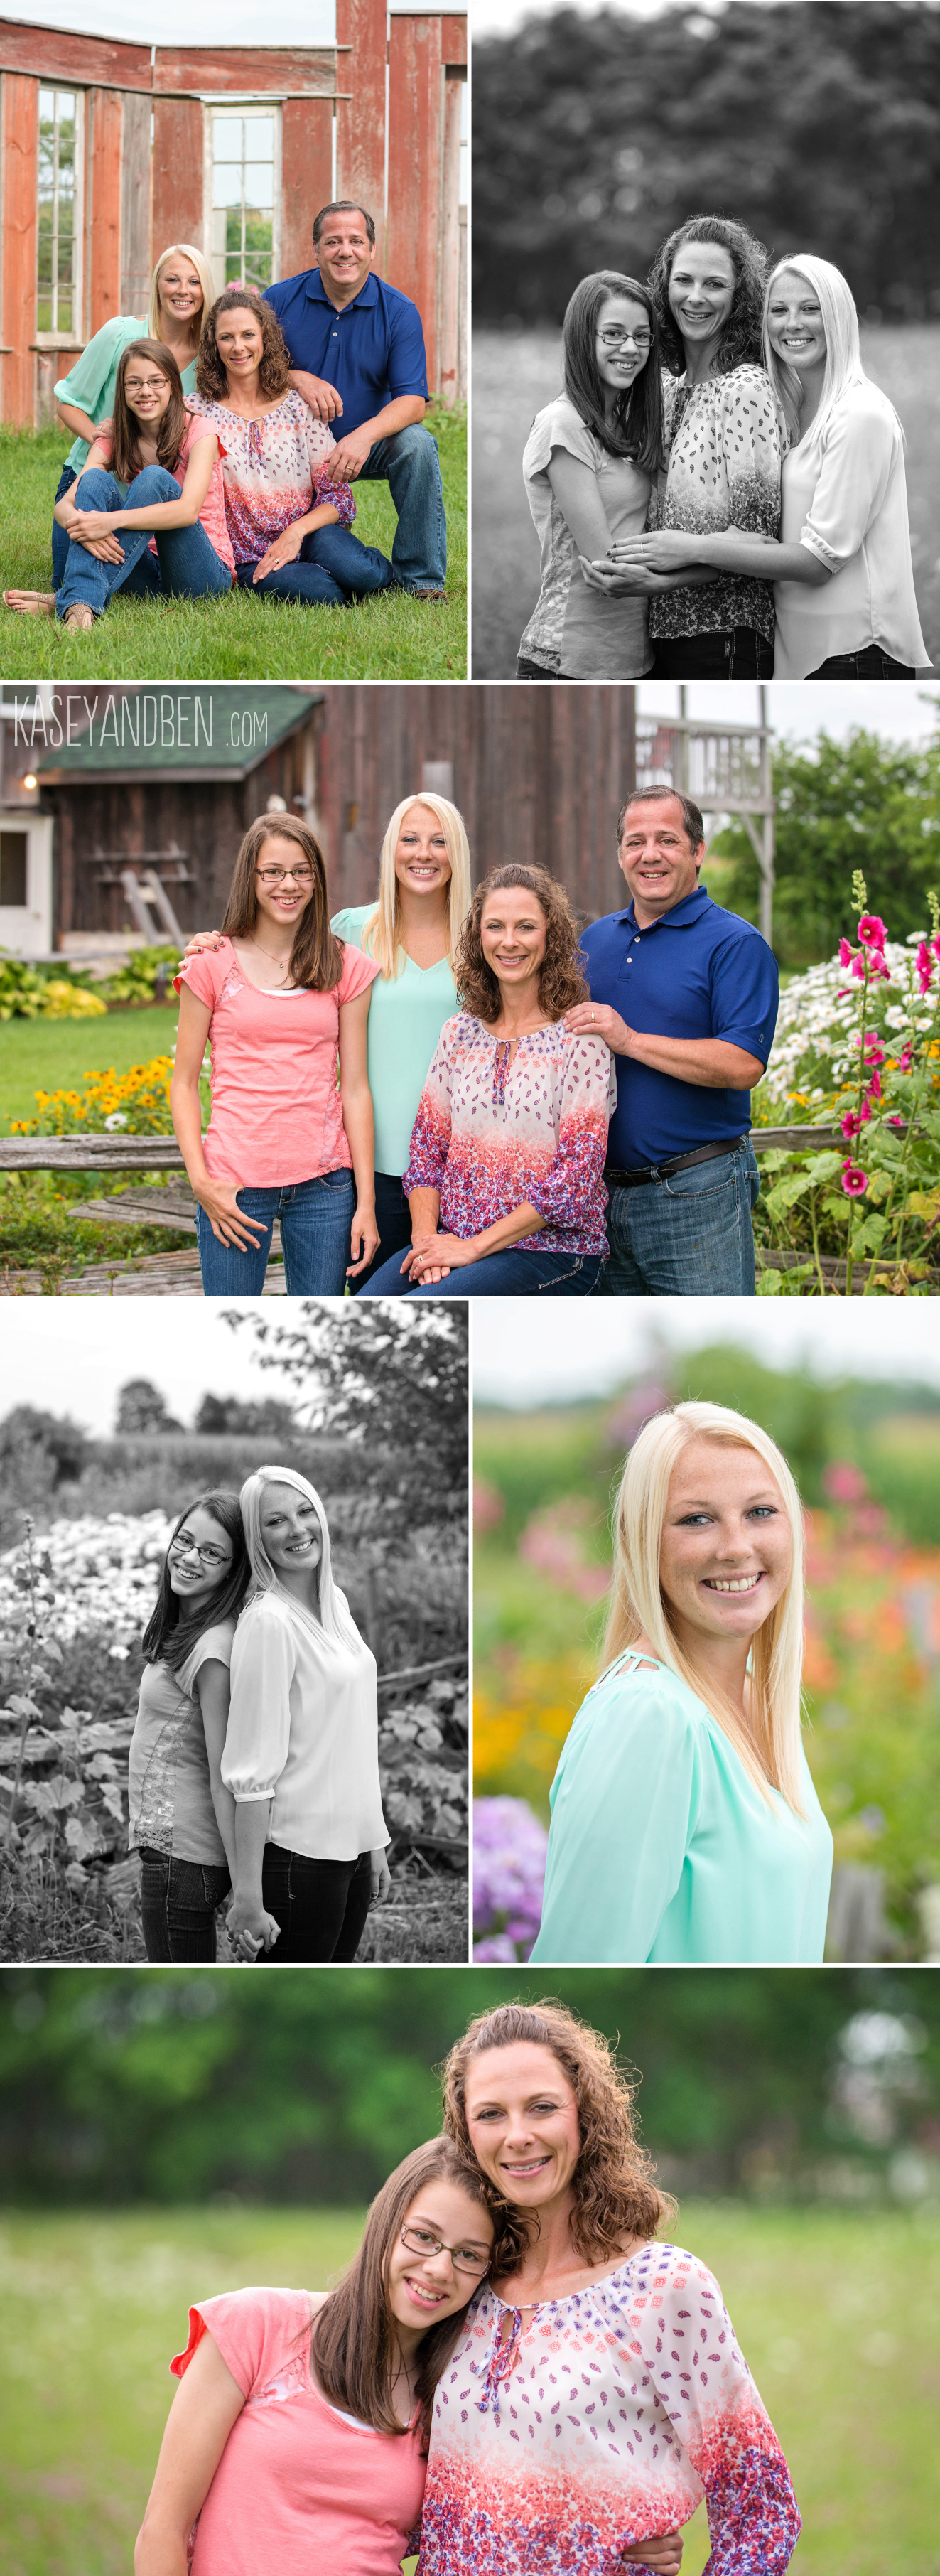 Door-County-Family-Photos-Egg-Harbor-Cornerstone-Suites-Barn-Photographer-Green-Bay